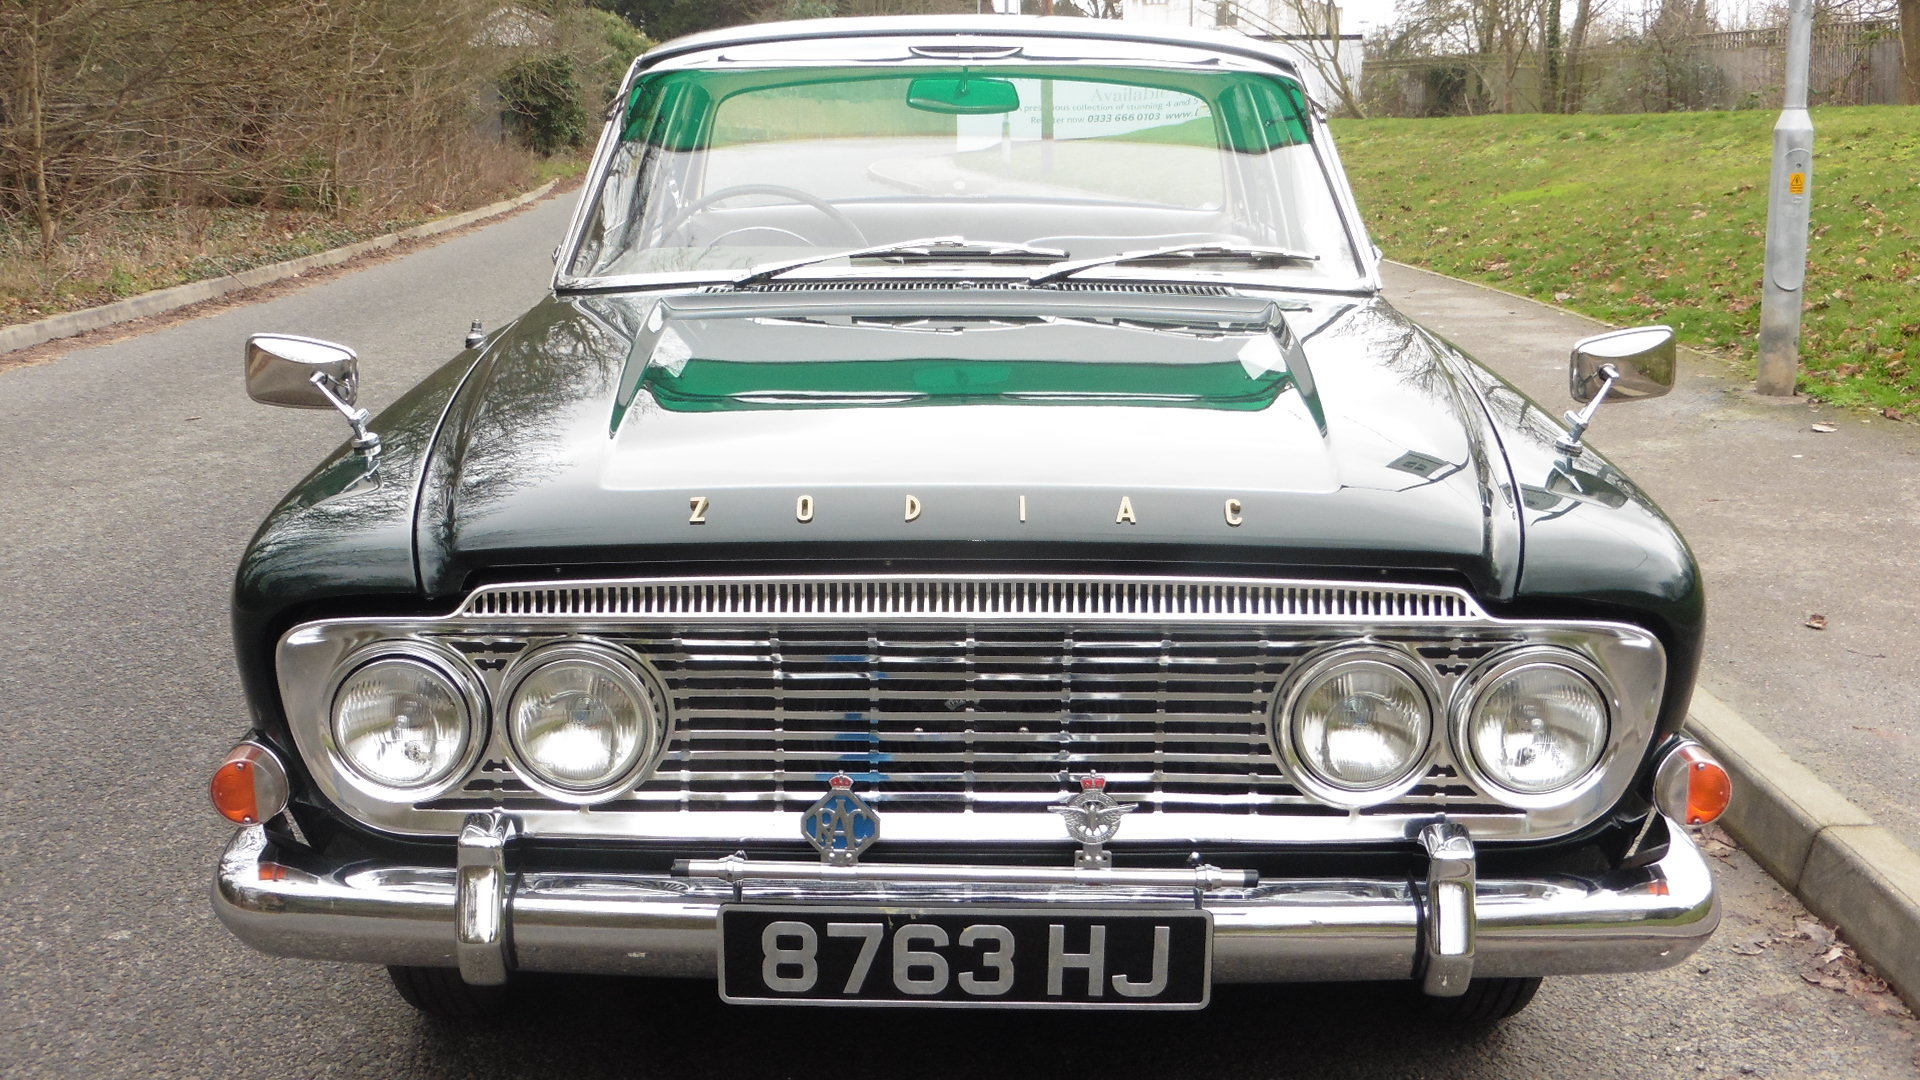 1963 Ford Zodiac MK3  Goodwood Green Just 49000 Miles Exceptional SOLD (picture 2 of 6)